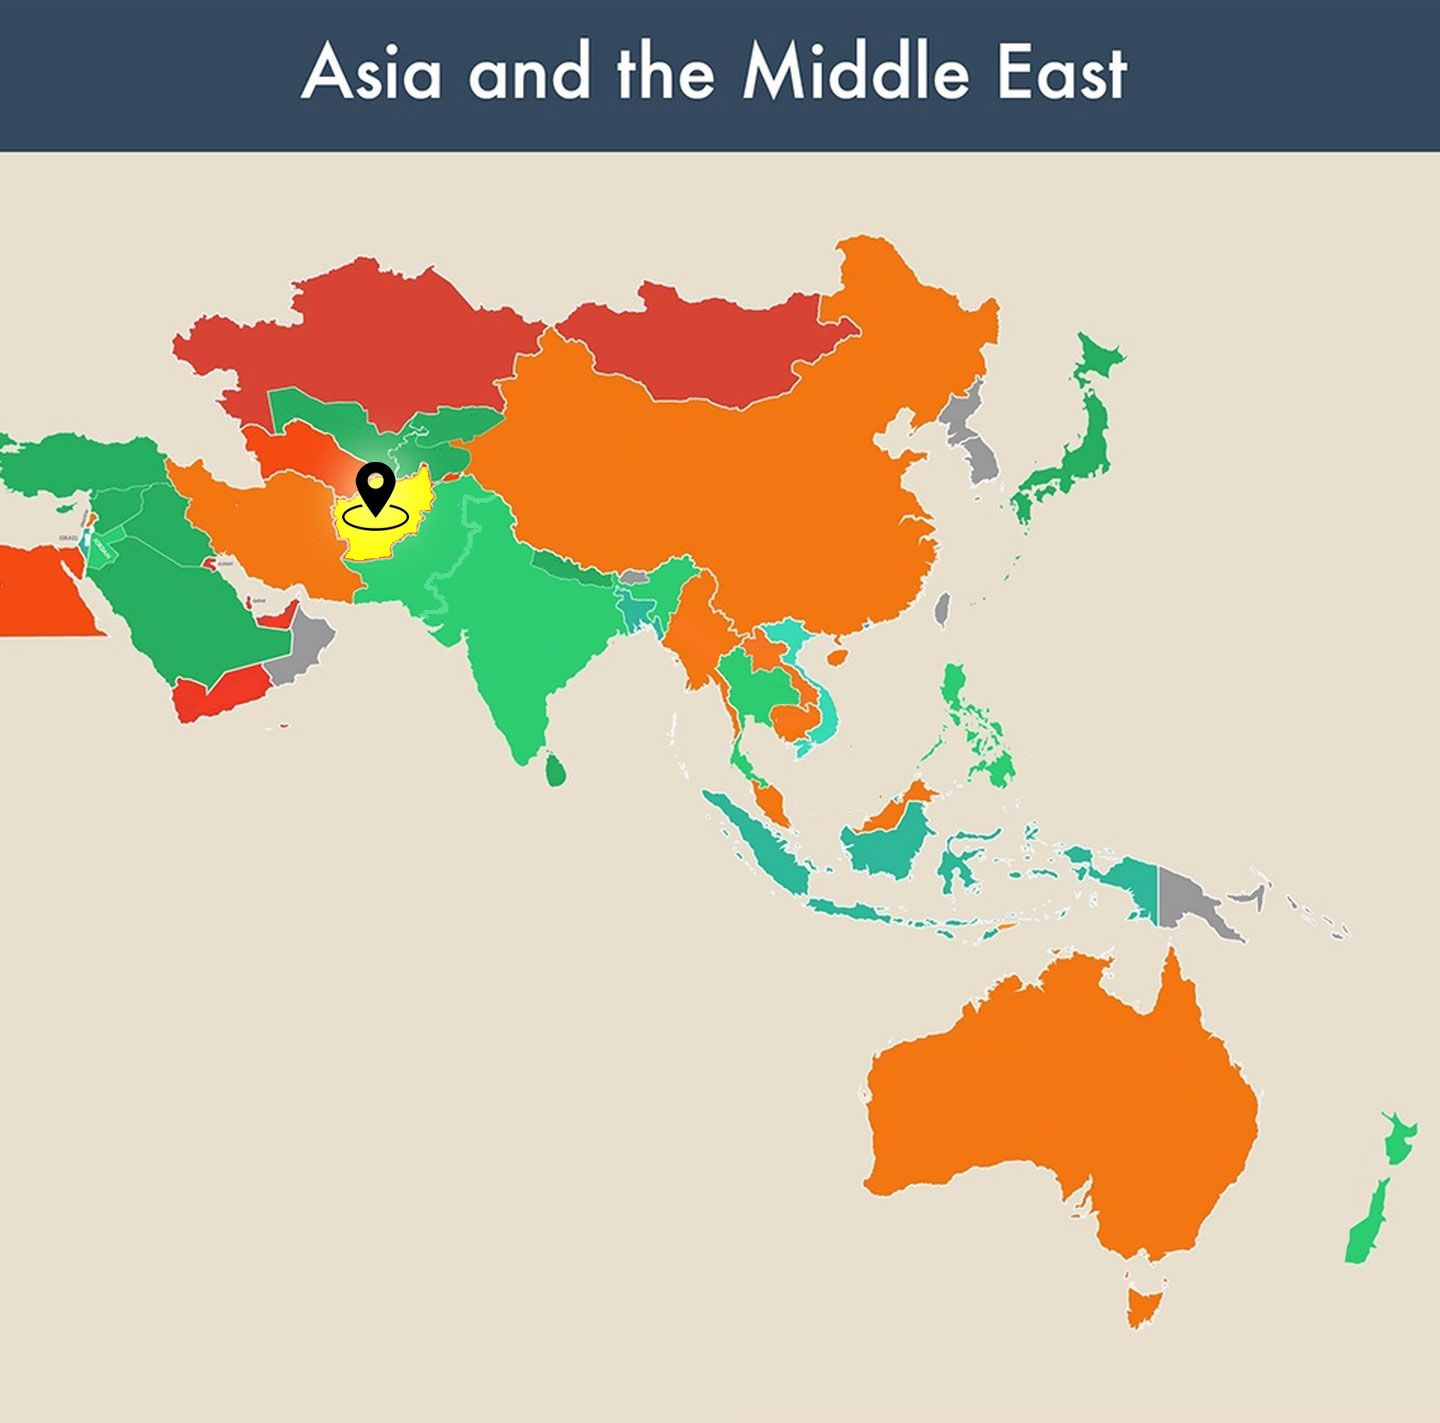 countries of the world empty map - afghanistan image